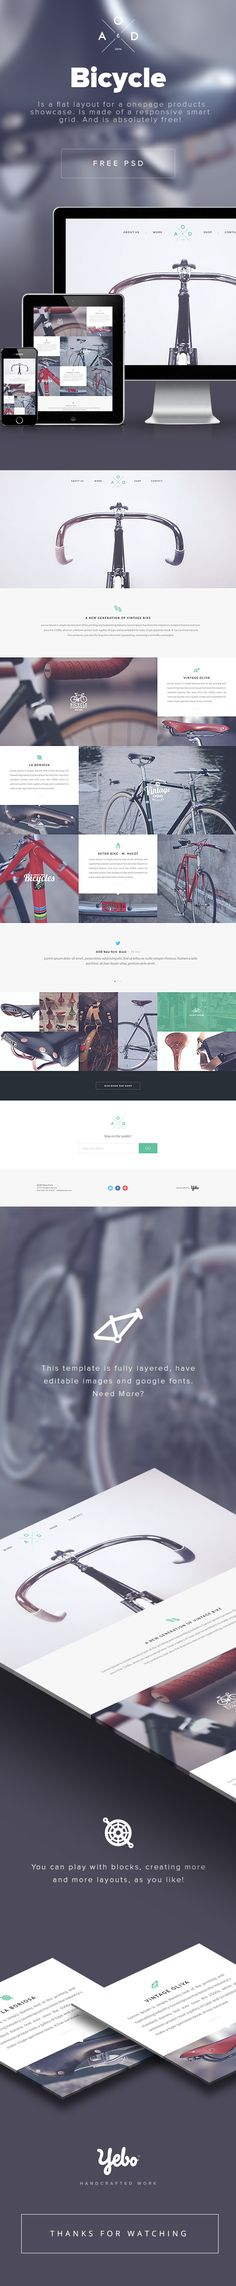 Bicycle Free PSD by Yebo - prikaz sajta Webdesign Inspiration, Web Inspiration, Graphic Design Inspiration, Design Web, Site Design, Flat Design, Website Layout, Web Layout, Layout Design